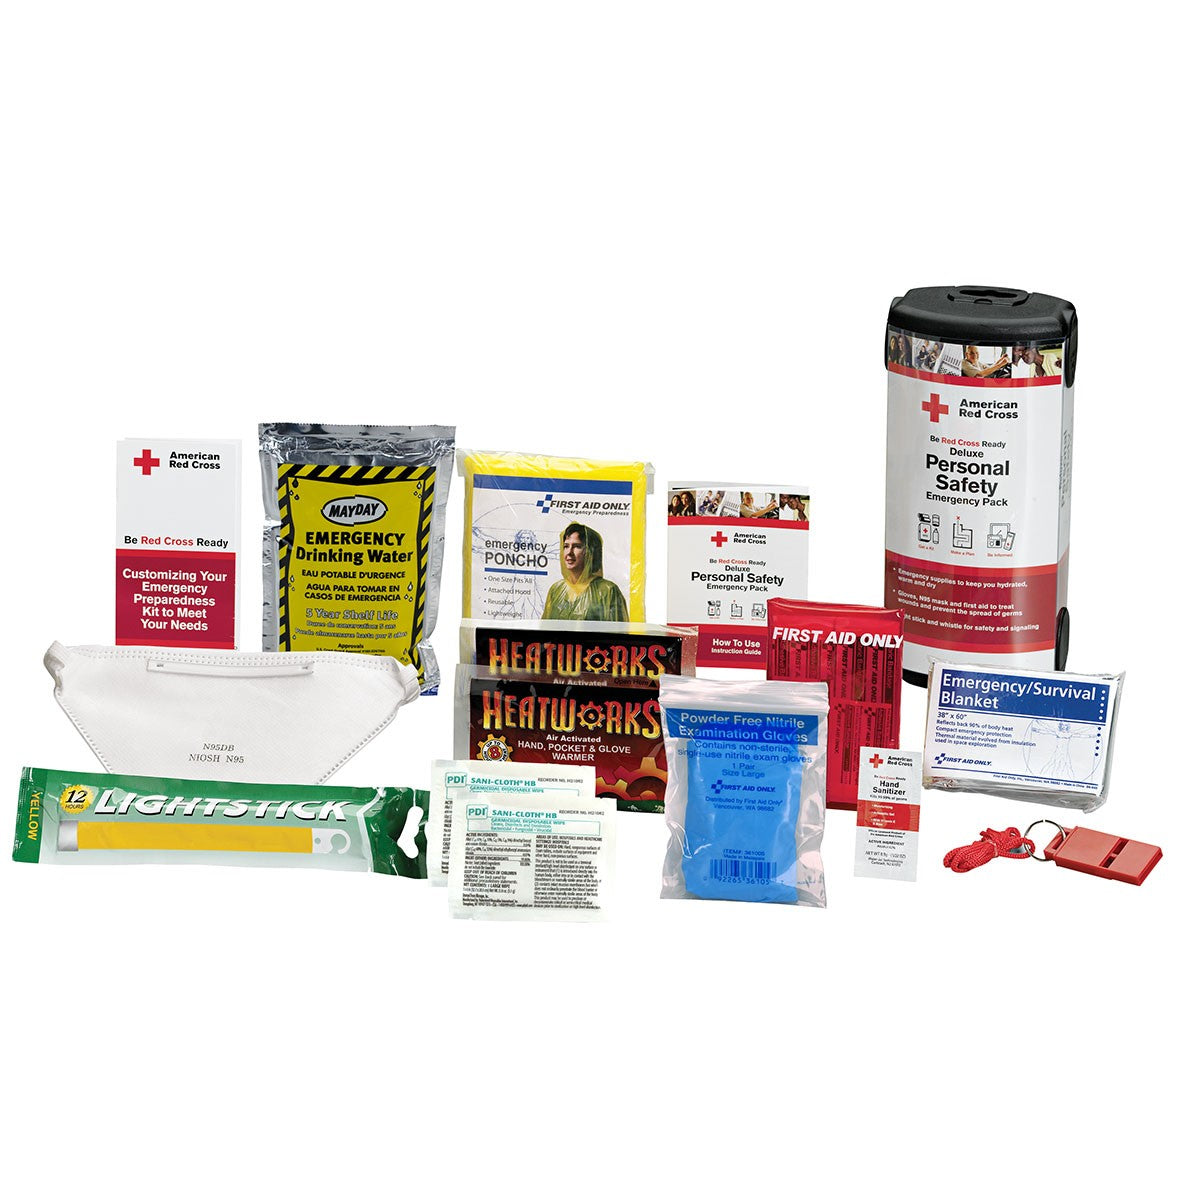 American Red Cross Deluxe Personal Safety Emergency Pack By First Aid Only - BS-FAK-RC-613-1-FM